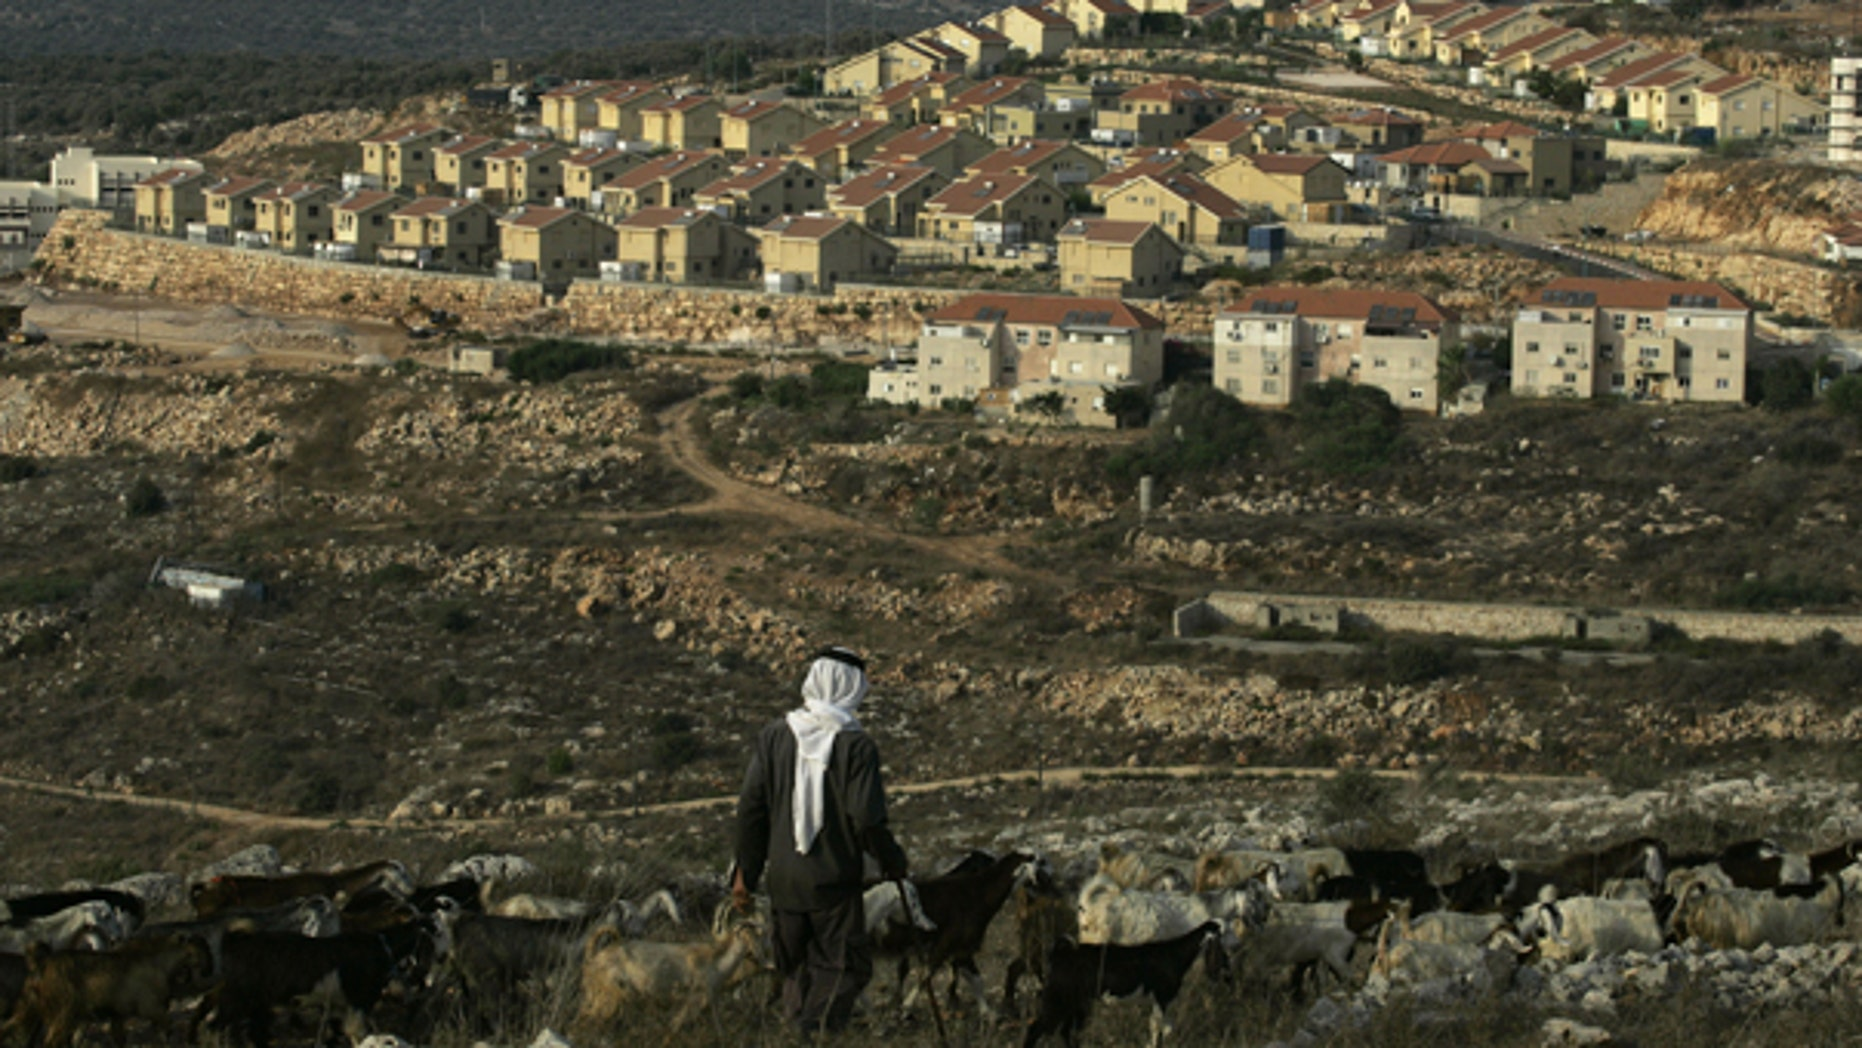 Sept. 25: A Palestinian shepherd walks near the Jewish settlement of Revava, near the West Bank Village of Salfit. Danny Danon, a pro-settler lawmaker in Netanyahu's Likud Party, said Saturday that settlers have already moved equipment into the Revava settlement in the northern West Bank.